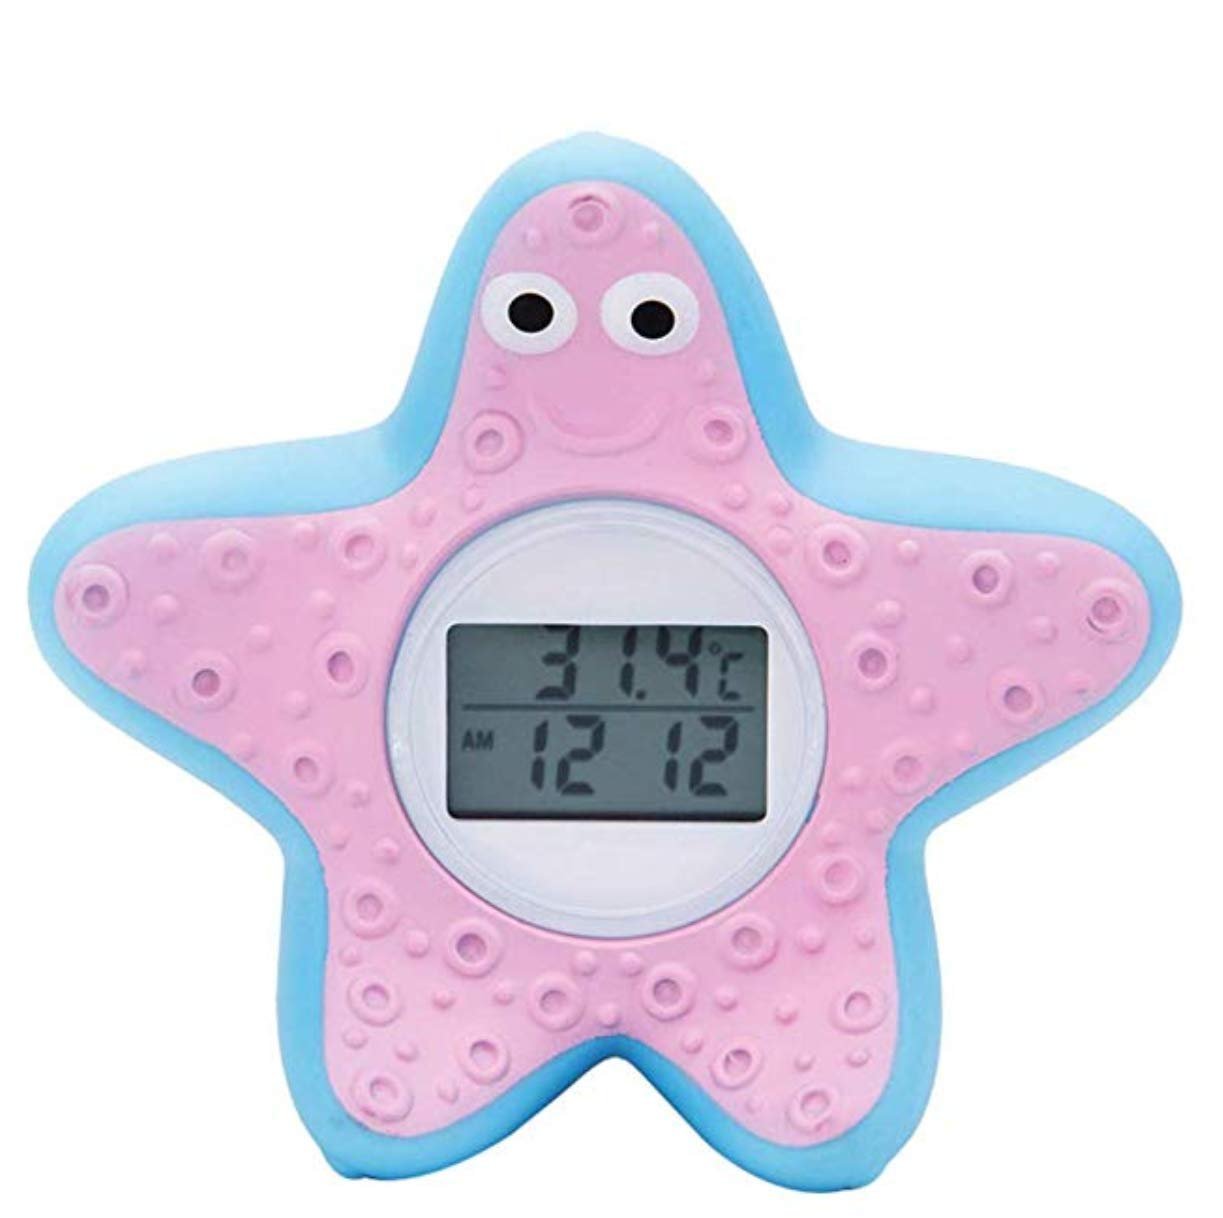 Baby Bath Thermometer, Floating Safety Temperature Thermometer - Health Bath Floating Toy- Temperature Alarm